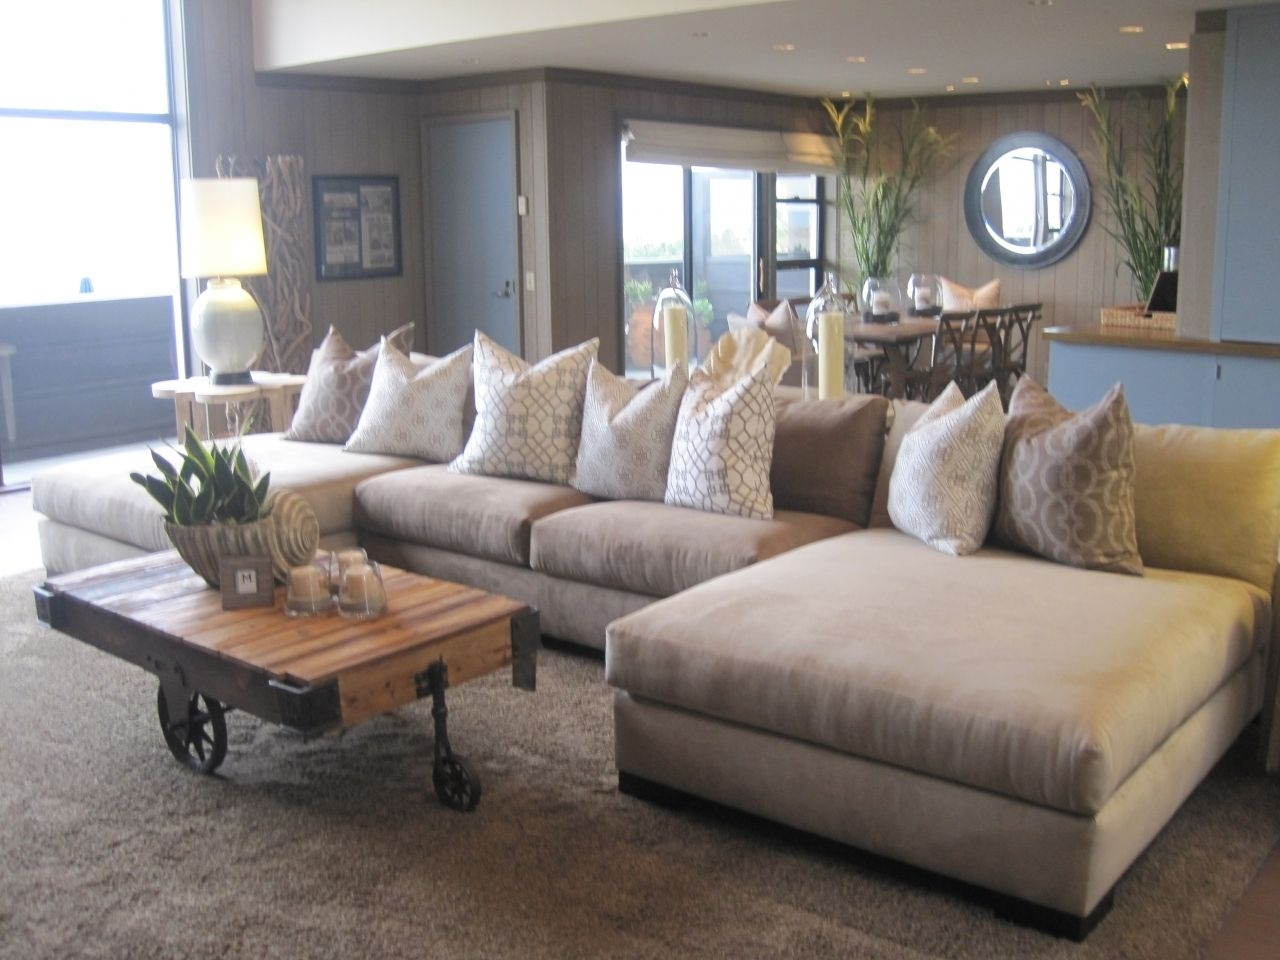 Furniture Cozy Living Room Using Stylish Oversized Sectional — Lesstestingmorelearning